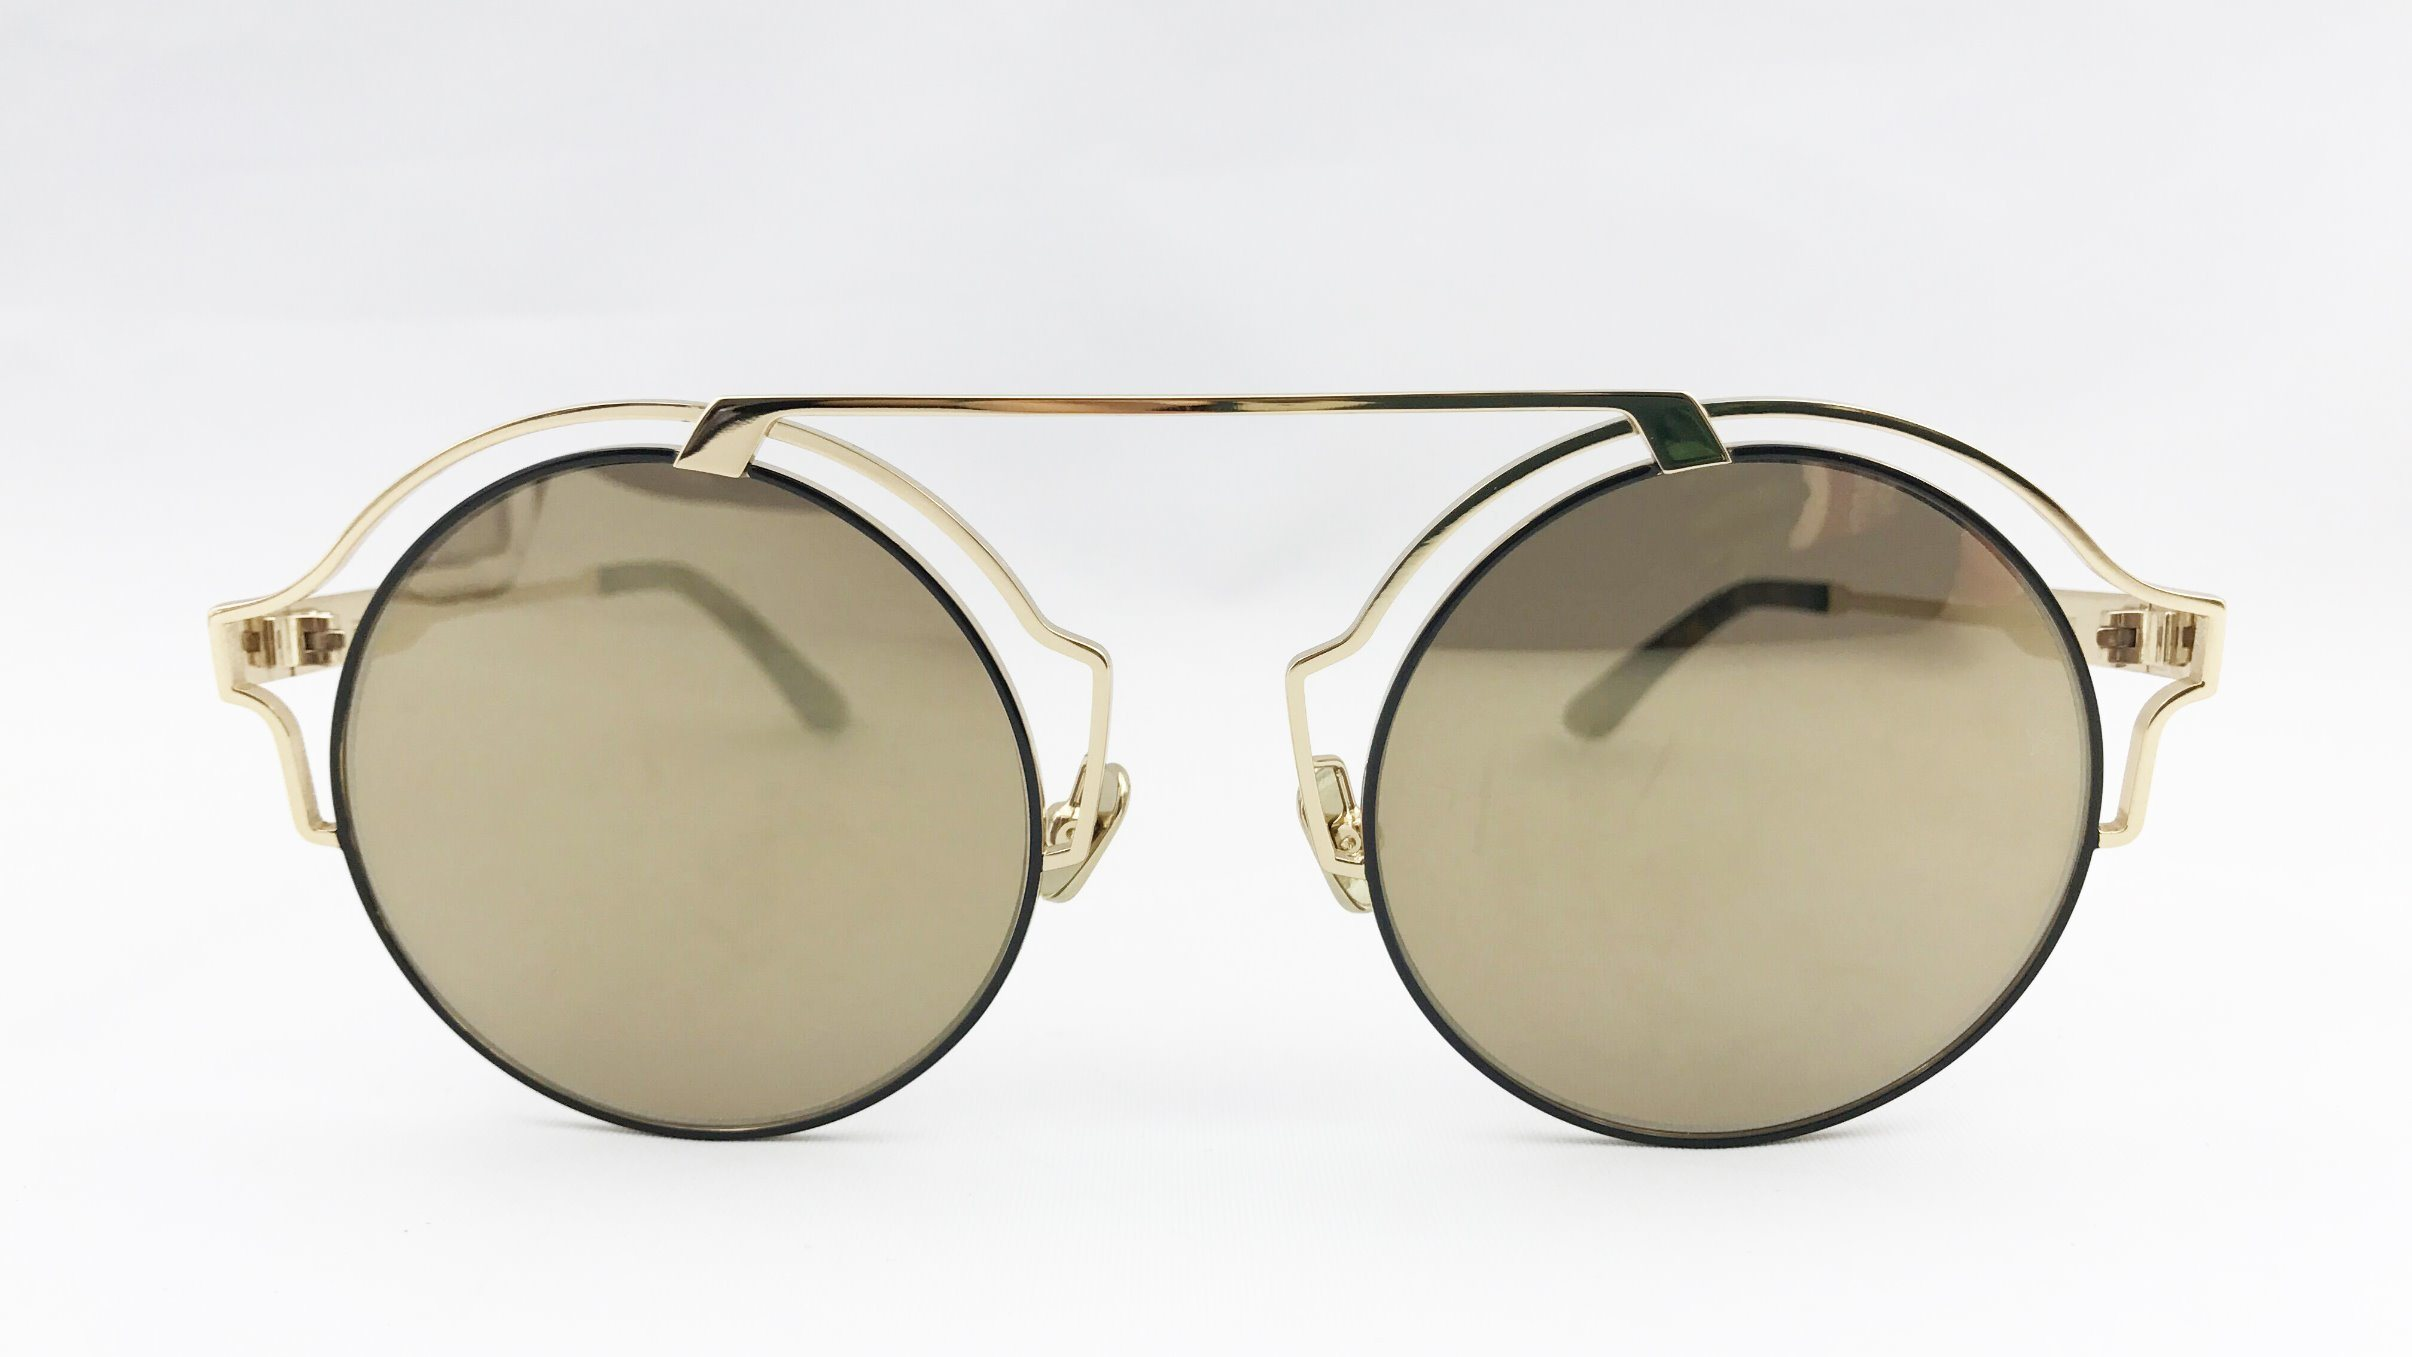 Fashion Round Shape Metal Sunglasses with Polarized Lens for Lady